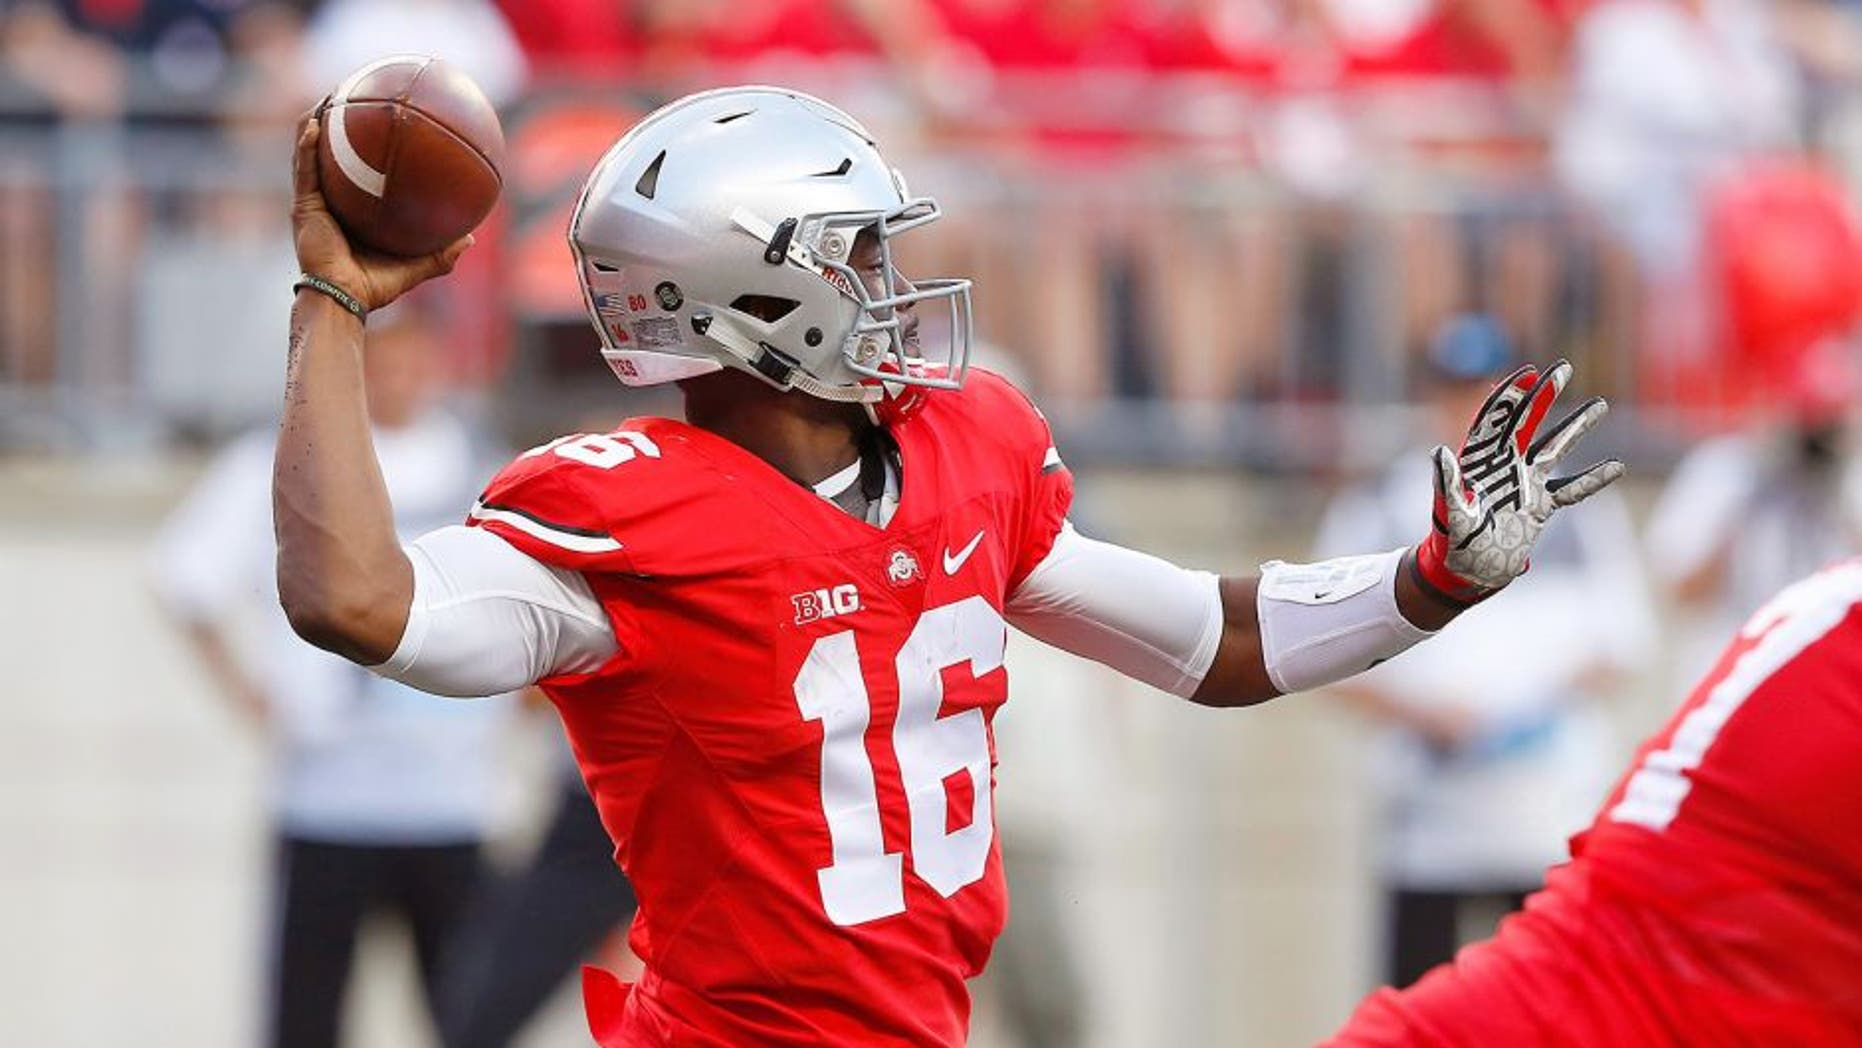 Sep 19, 2015; Columbus, OH, USA; Ohio State Buckeyes quarterback J.T. Barrett (16) drops to throw during the second half versus the Northern Illinois Huskies at Ohio Stadium. The Ohio State Buckeyes won 20-13. Mandatory Credit: Joe Maiorana-USA TODAY Sports